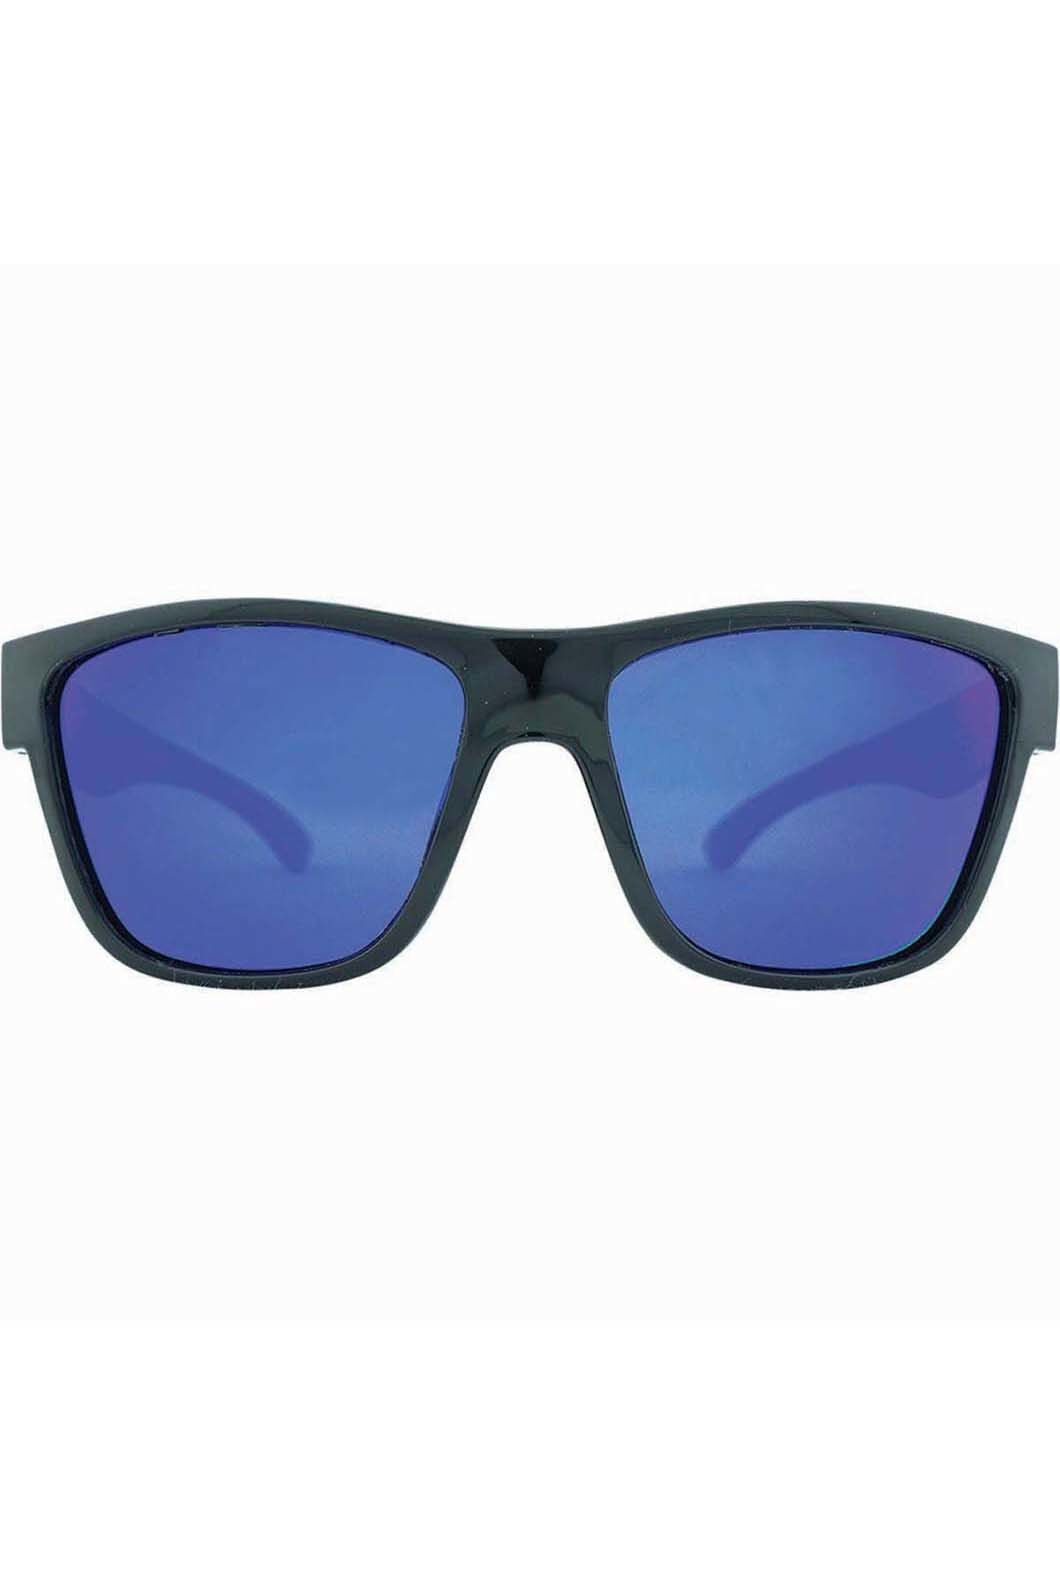 Venture Eyewear Unisex Escape Float H2O Sunglasses Matte, MATT BLACK/GREY, hi-res